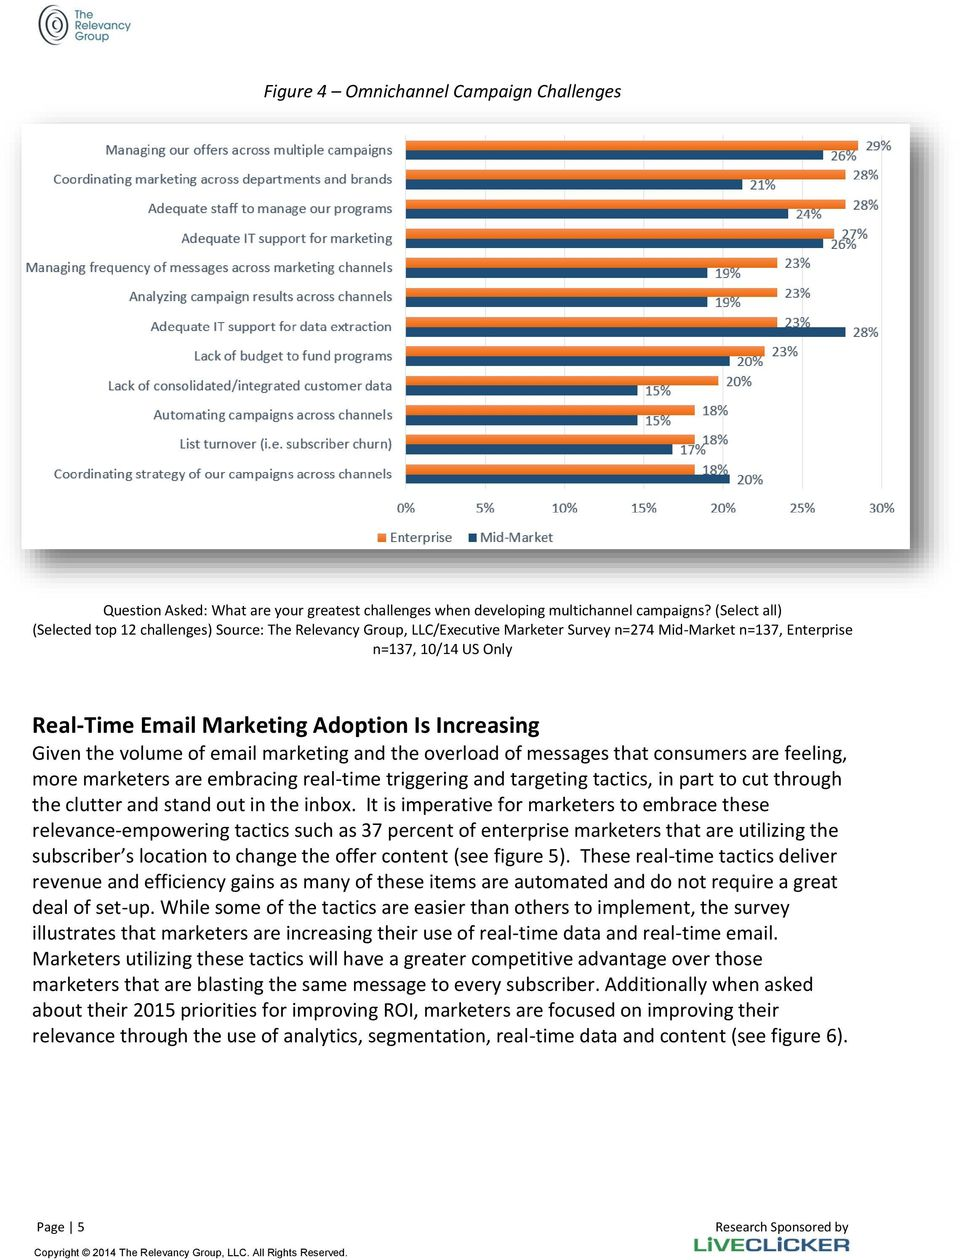 Increasing Given the volume of email marketing and the overload of messages that consumers are feeling, more marketers are embracing real-time triggering and targeting tactics, in part to cut through